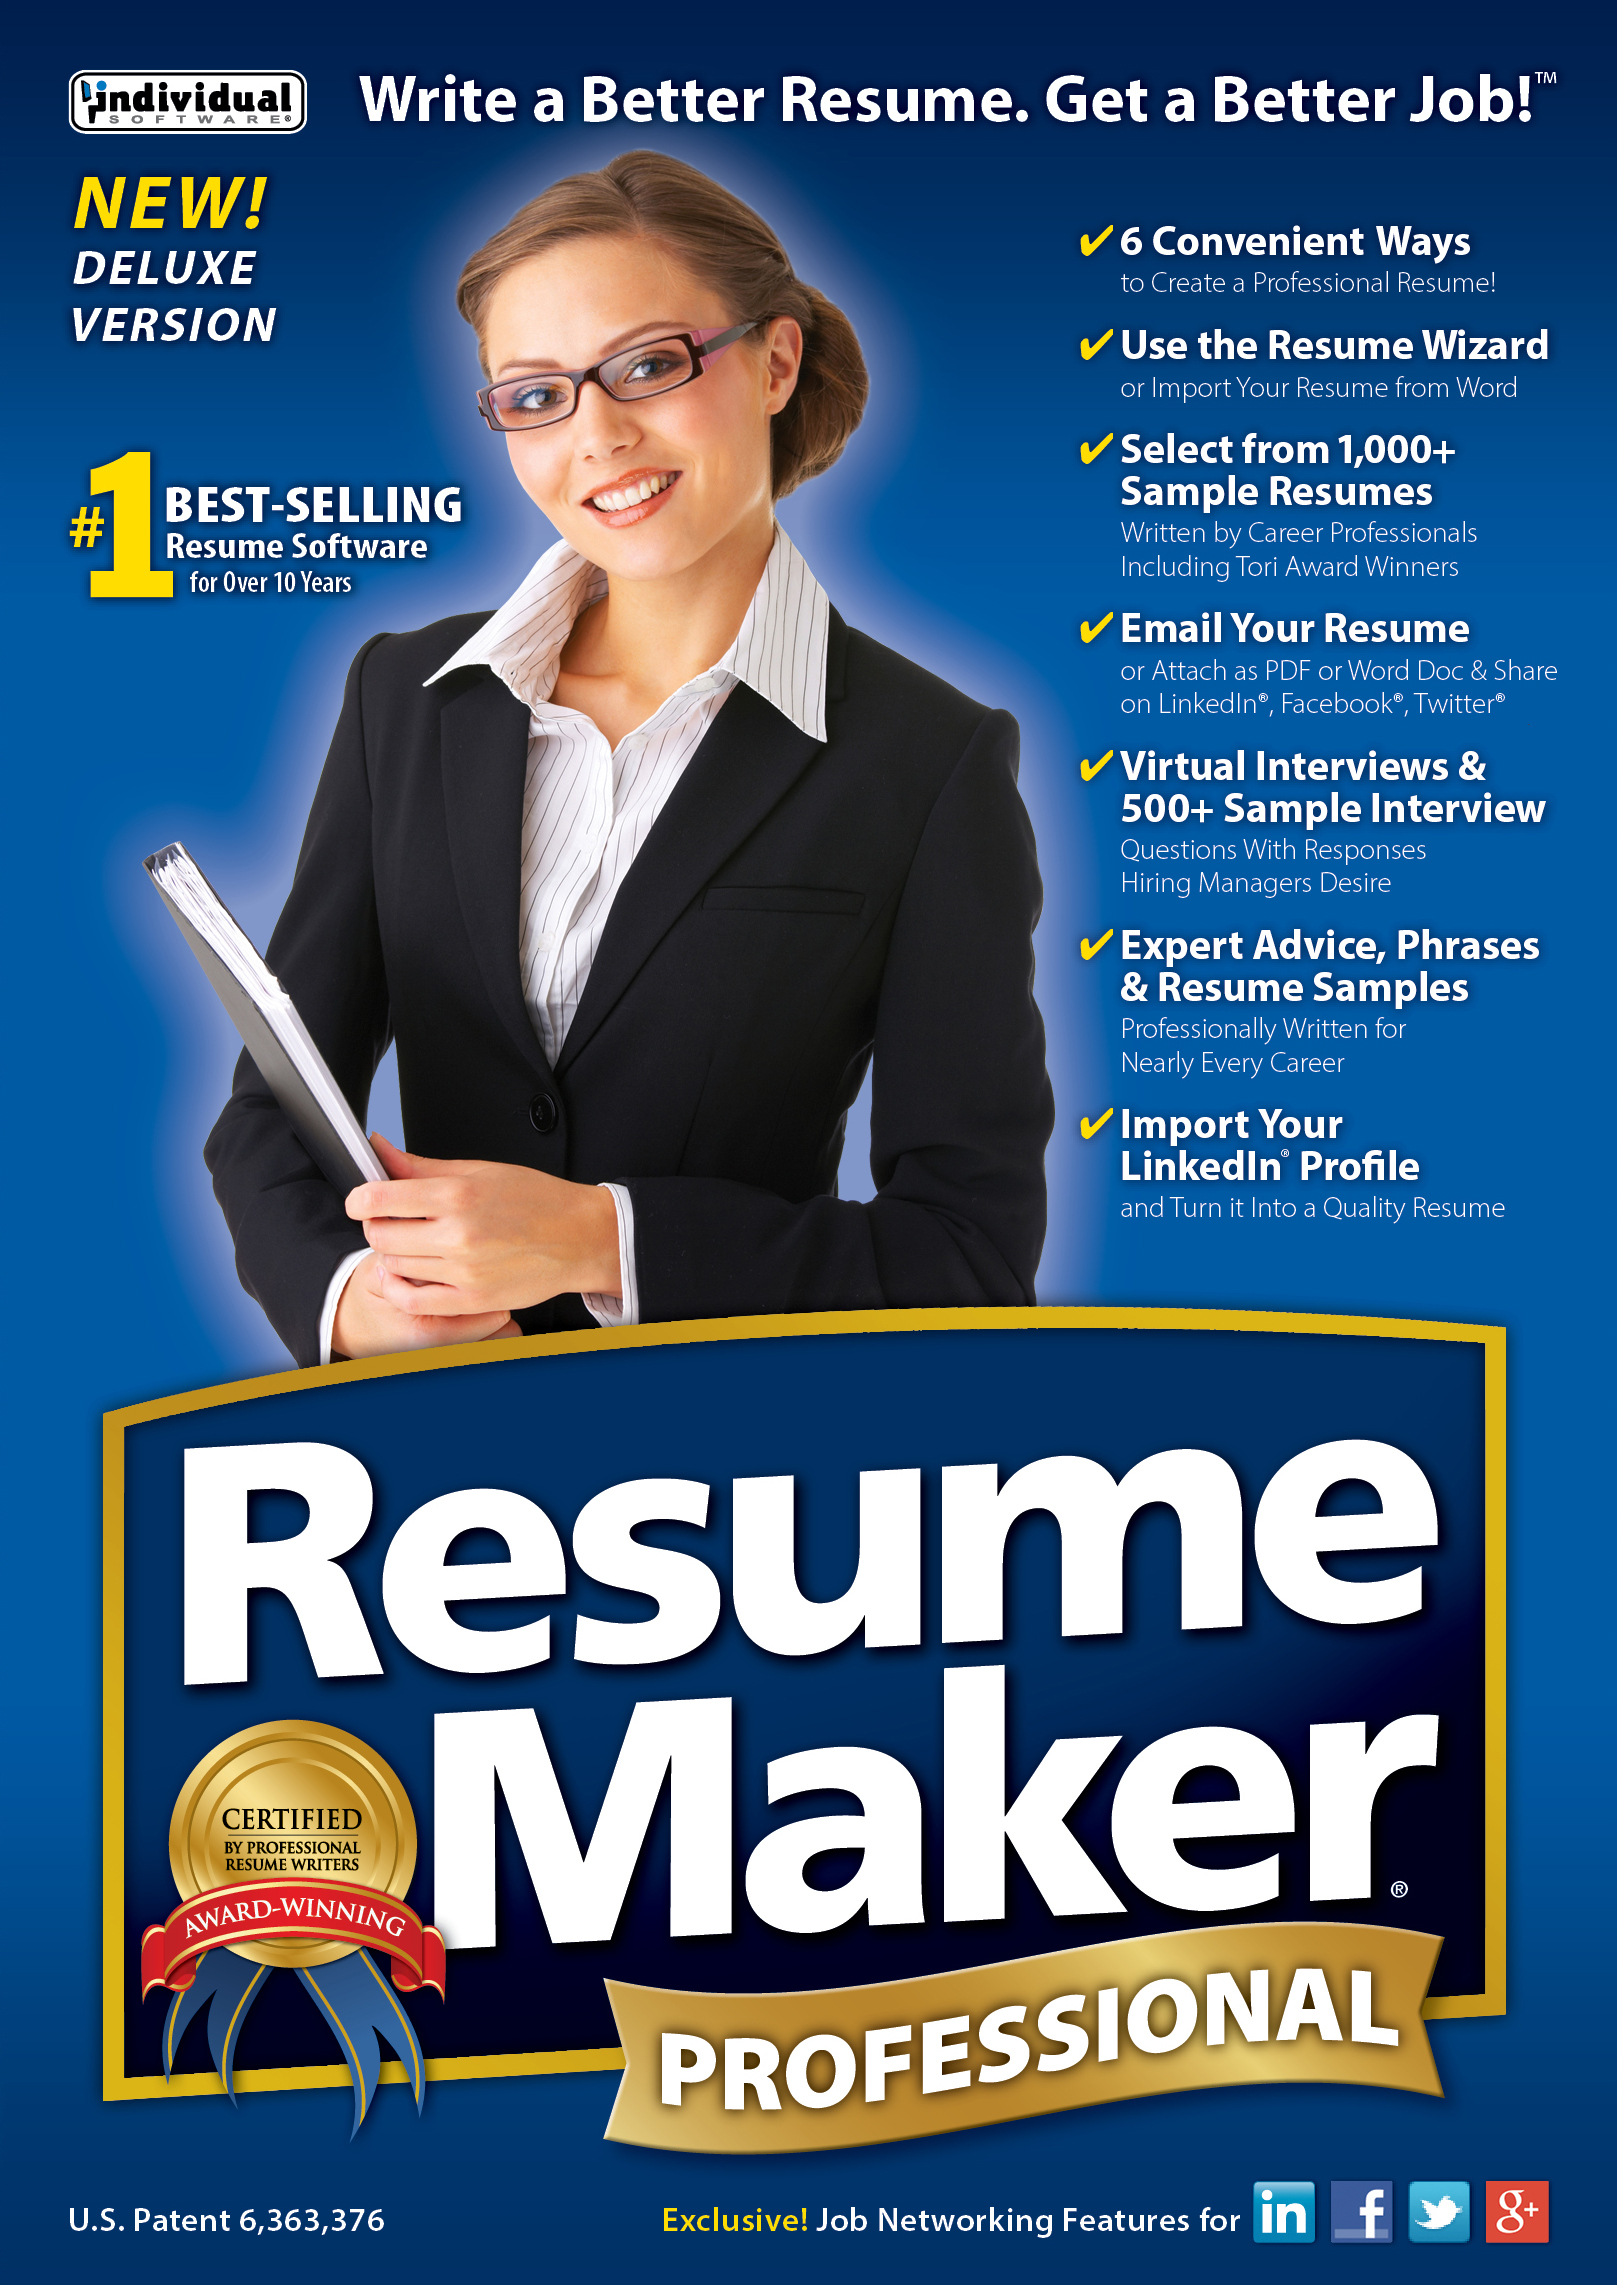 amazoncom resumemaker professional deluxe 19 download software - Individual Software Resume Maker